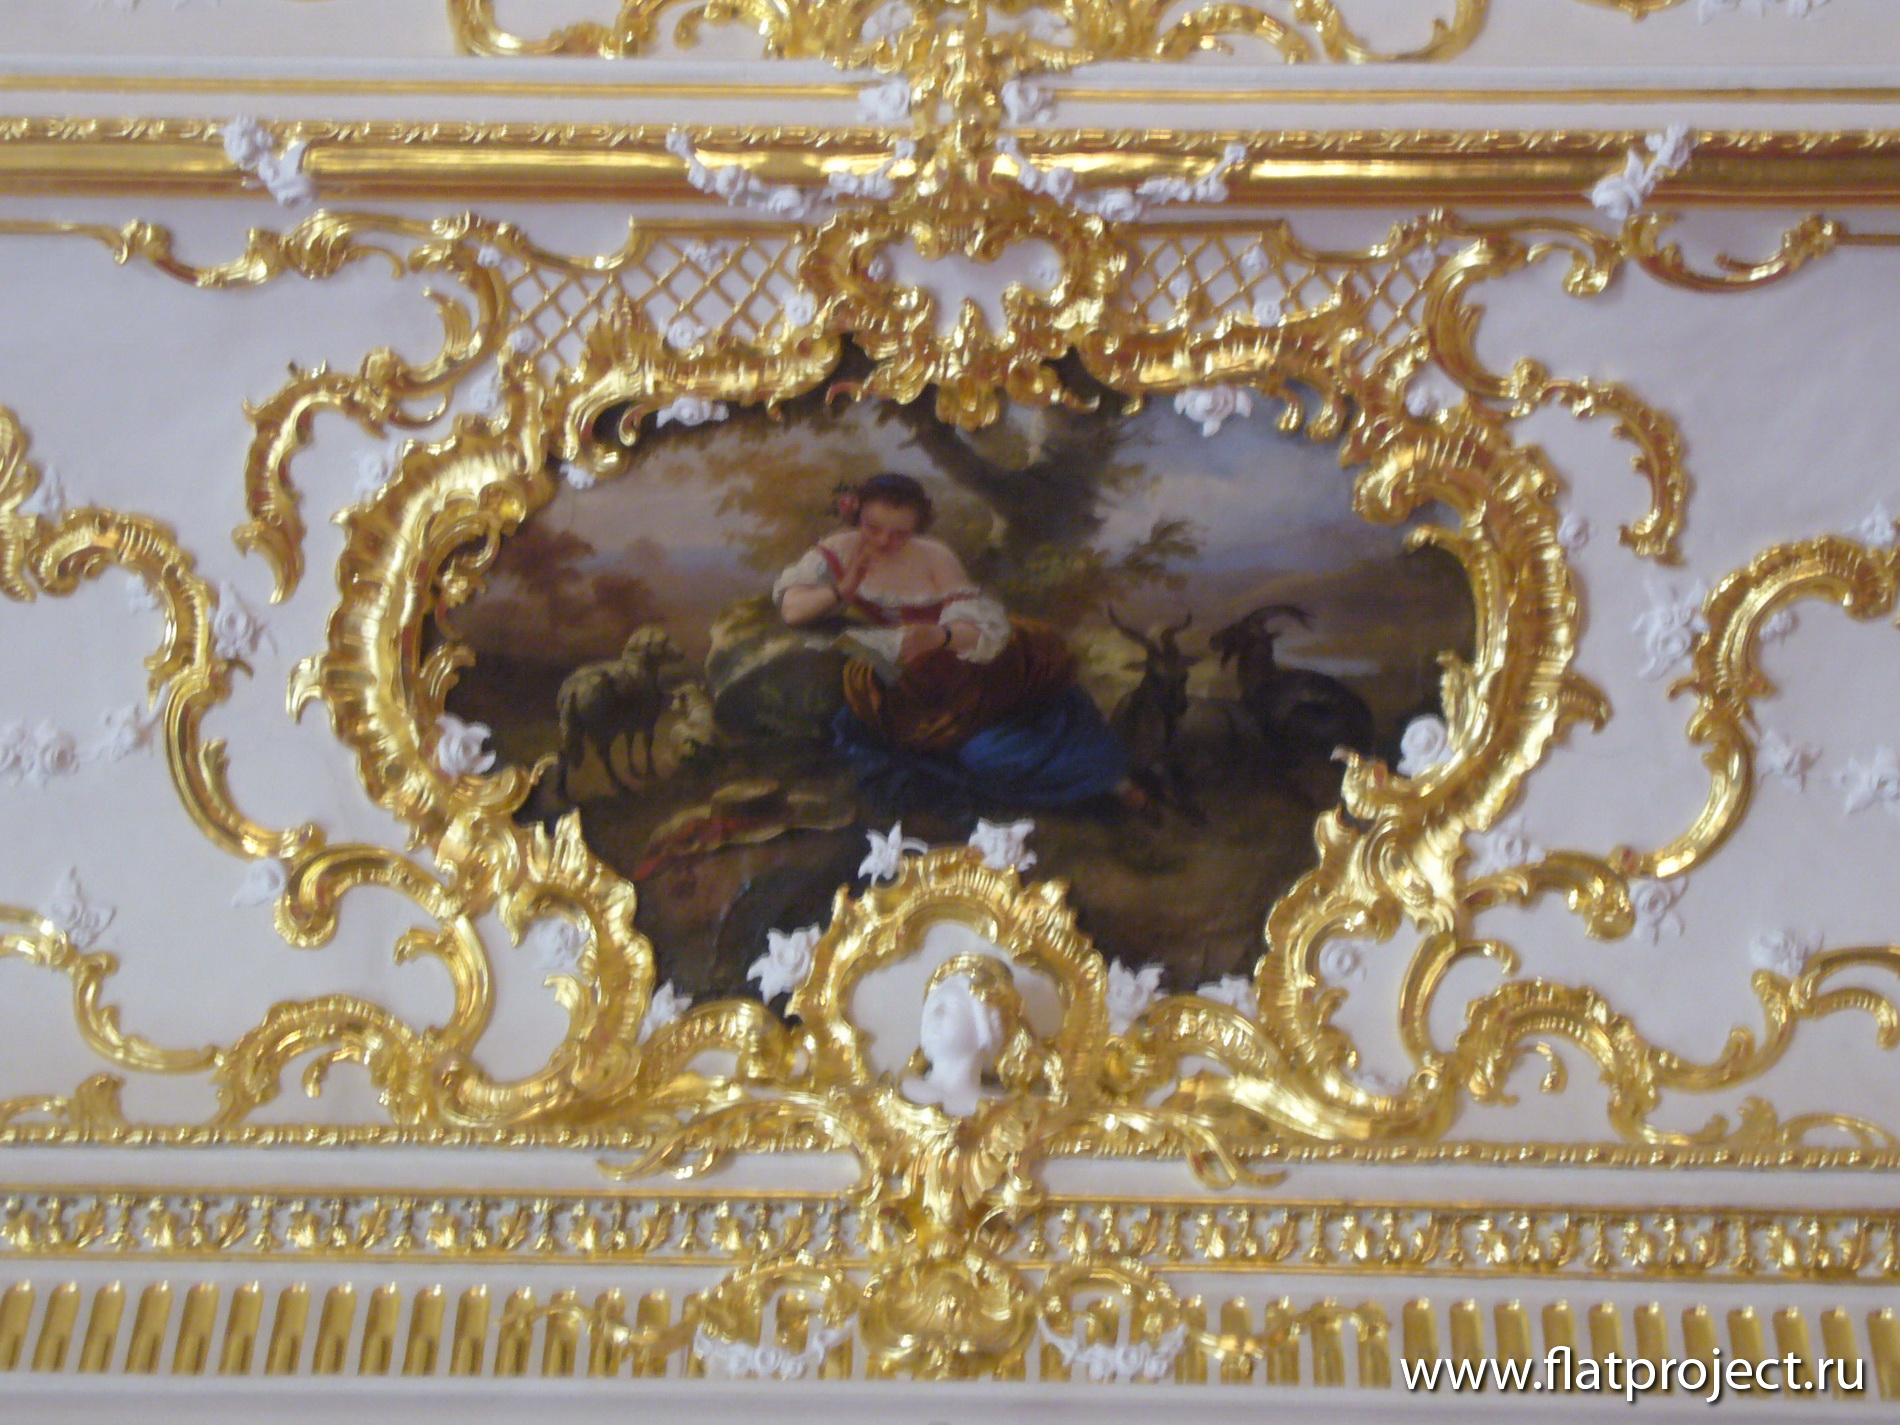 The State Russian museum interiors – photo 45